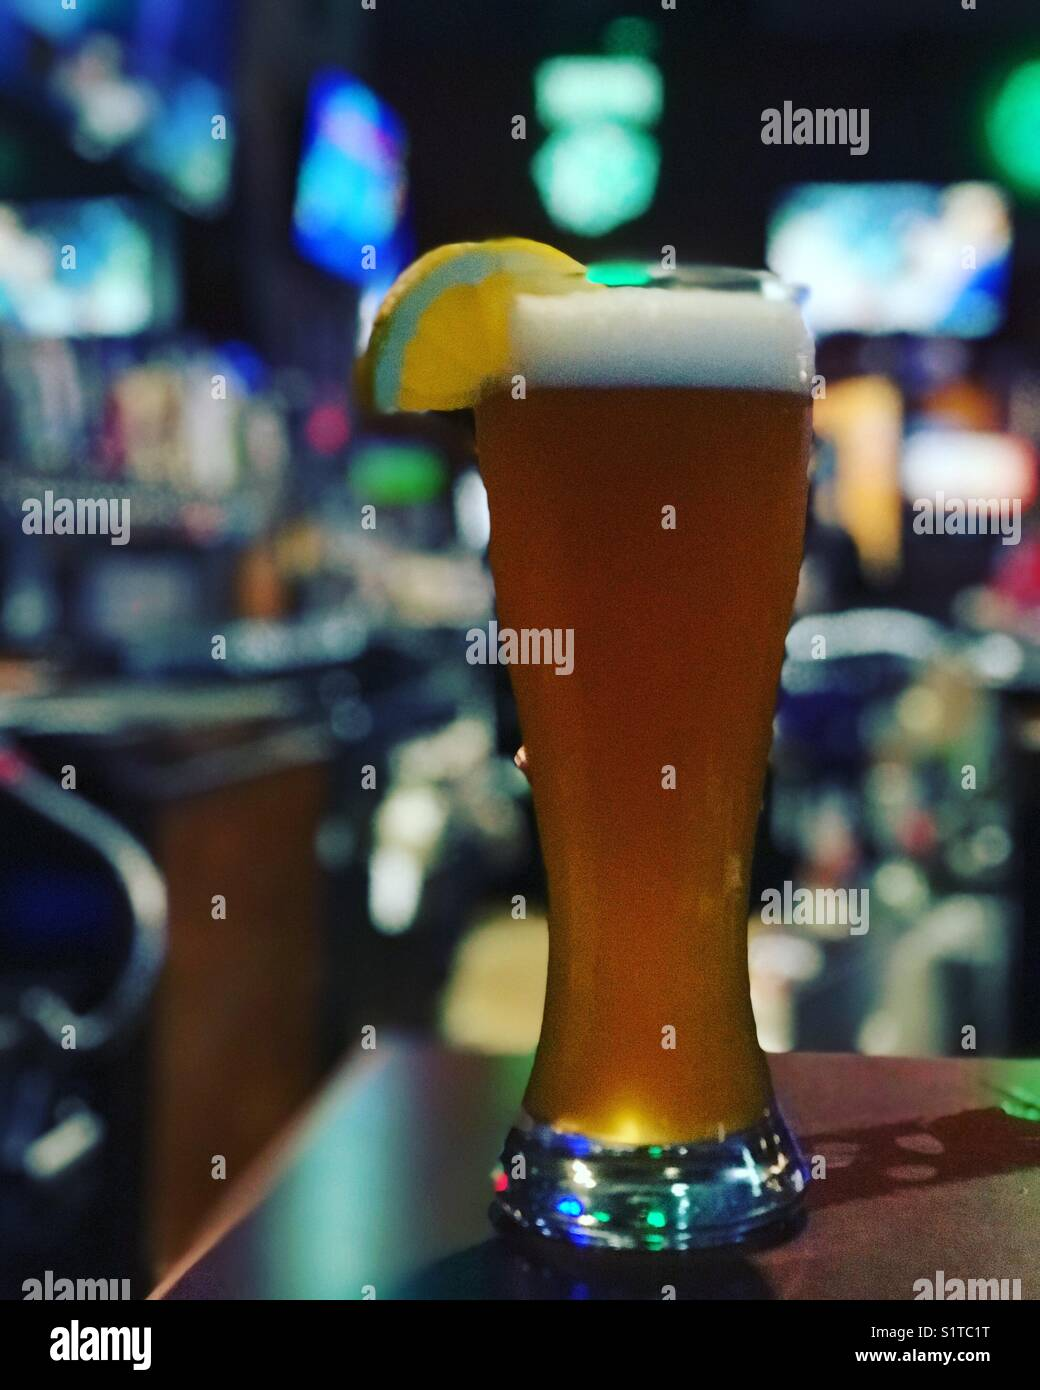 Blue Moon Beer Stock Photos & Blue Moon Beer Stock Images - Alamy